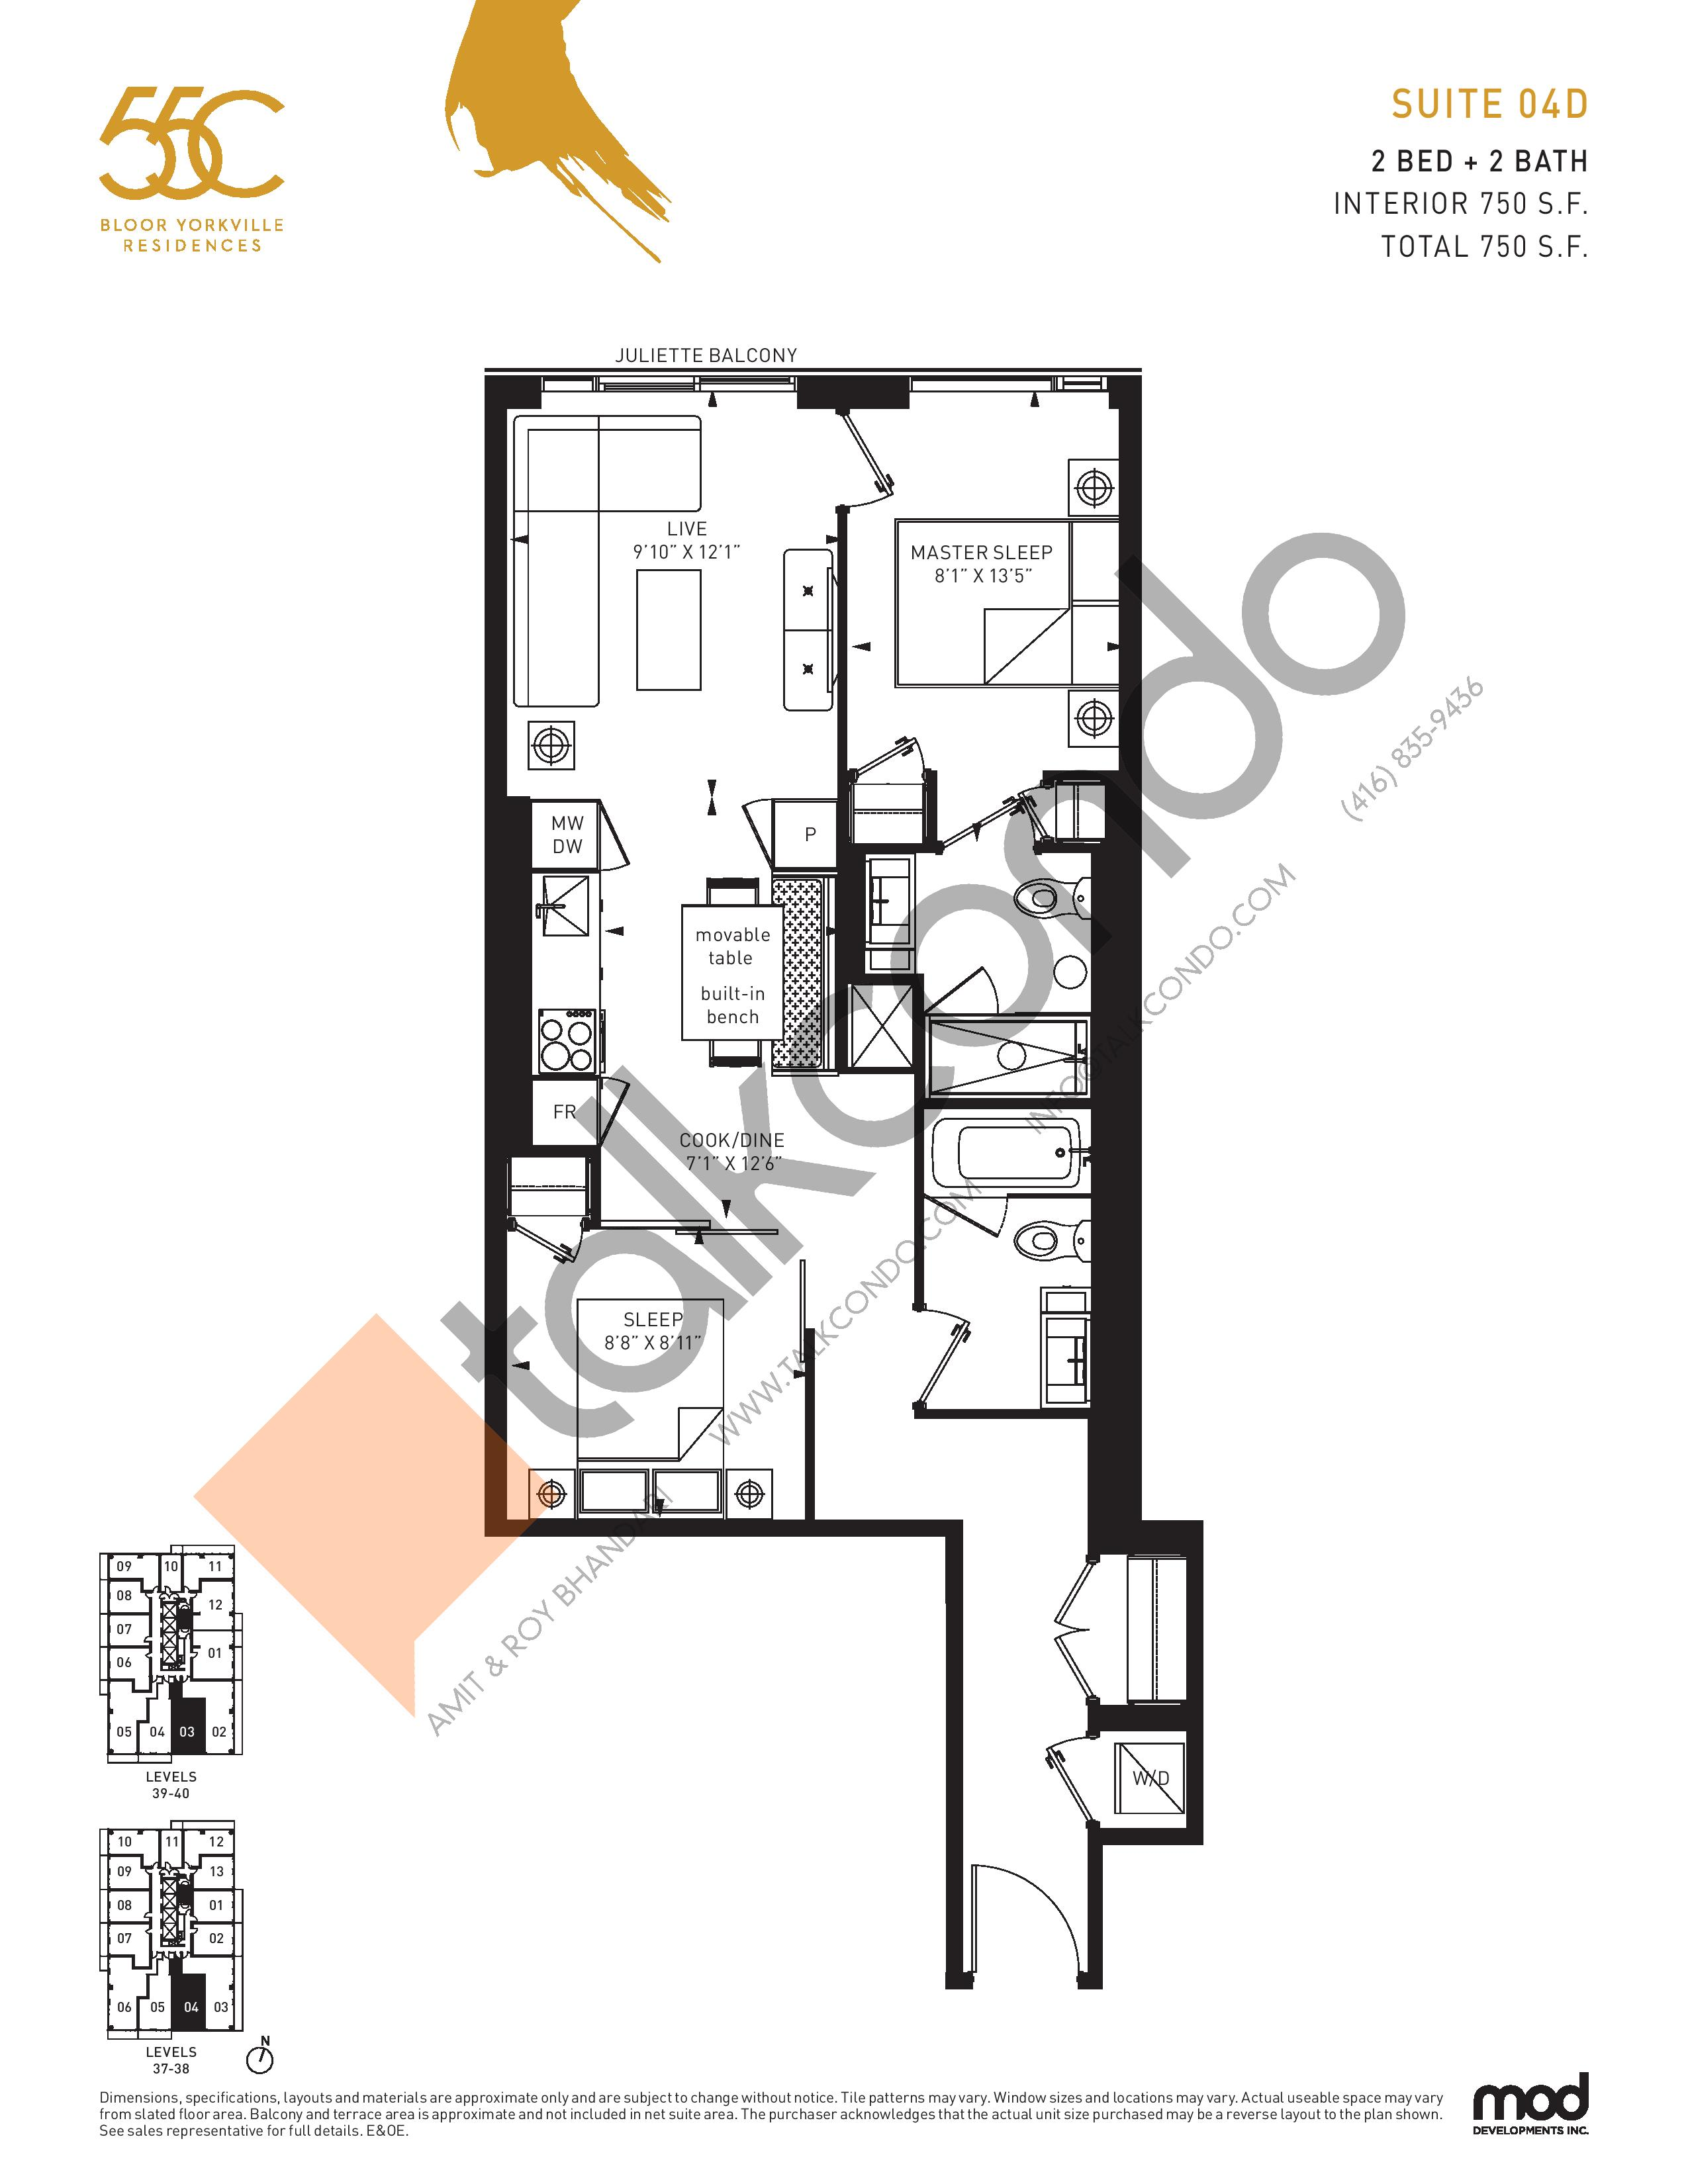 Suite 04D Floor Plan at 55C Condos - 750 sq.ft